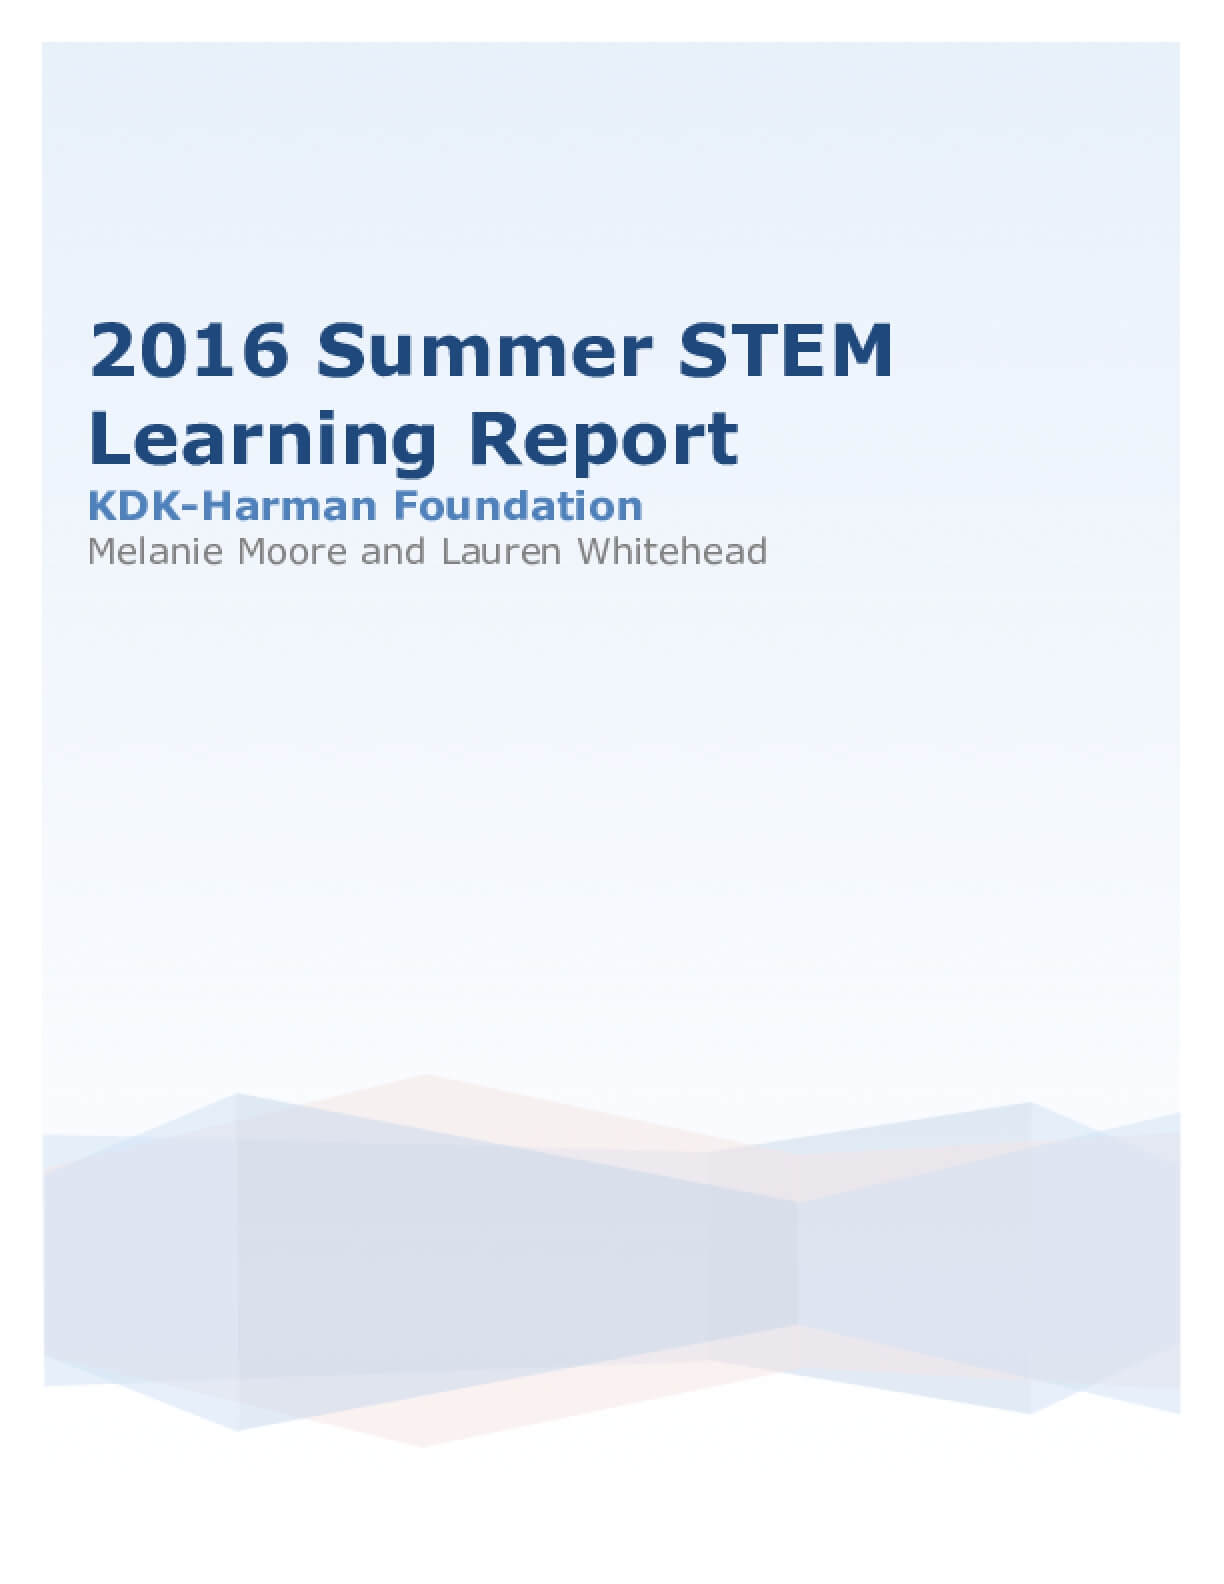 2016 Summer STEM Learning Report